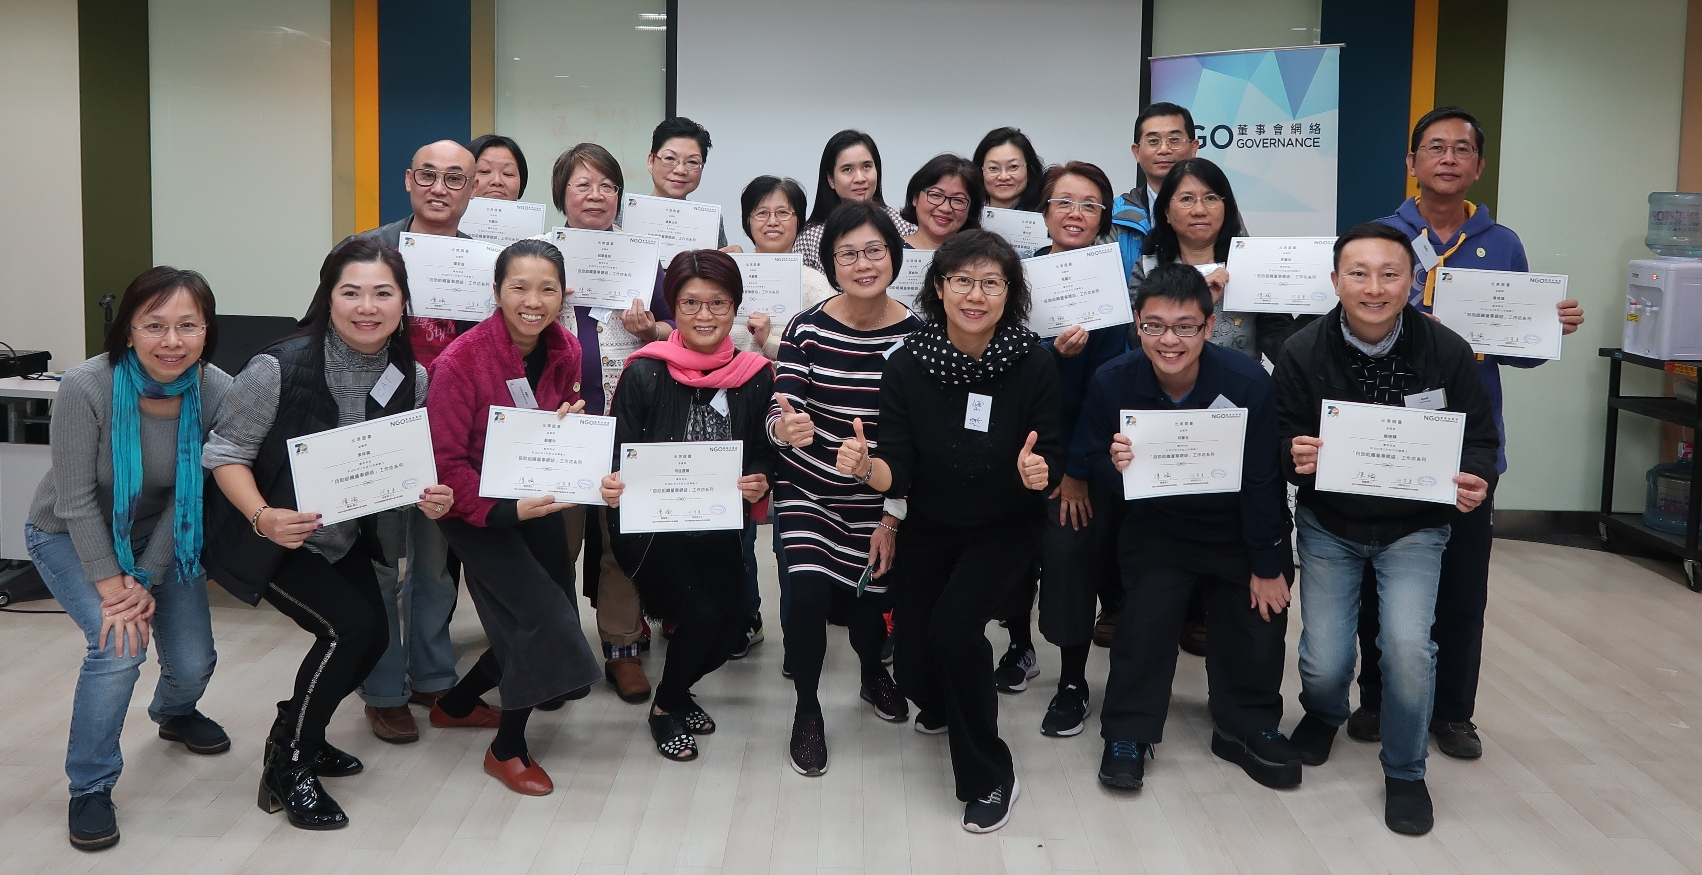 Directors of Self-help Organizations' Network I held between February to December 2017 has been completed. The Network comprised of six networking cum training sessions provides a platform for solution-focused sharing and networking on governance issues, encouraging the co-creation of governance practices by board members of local rehabilitation self-help organizations.